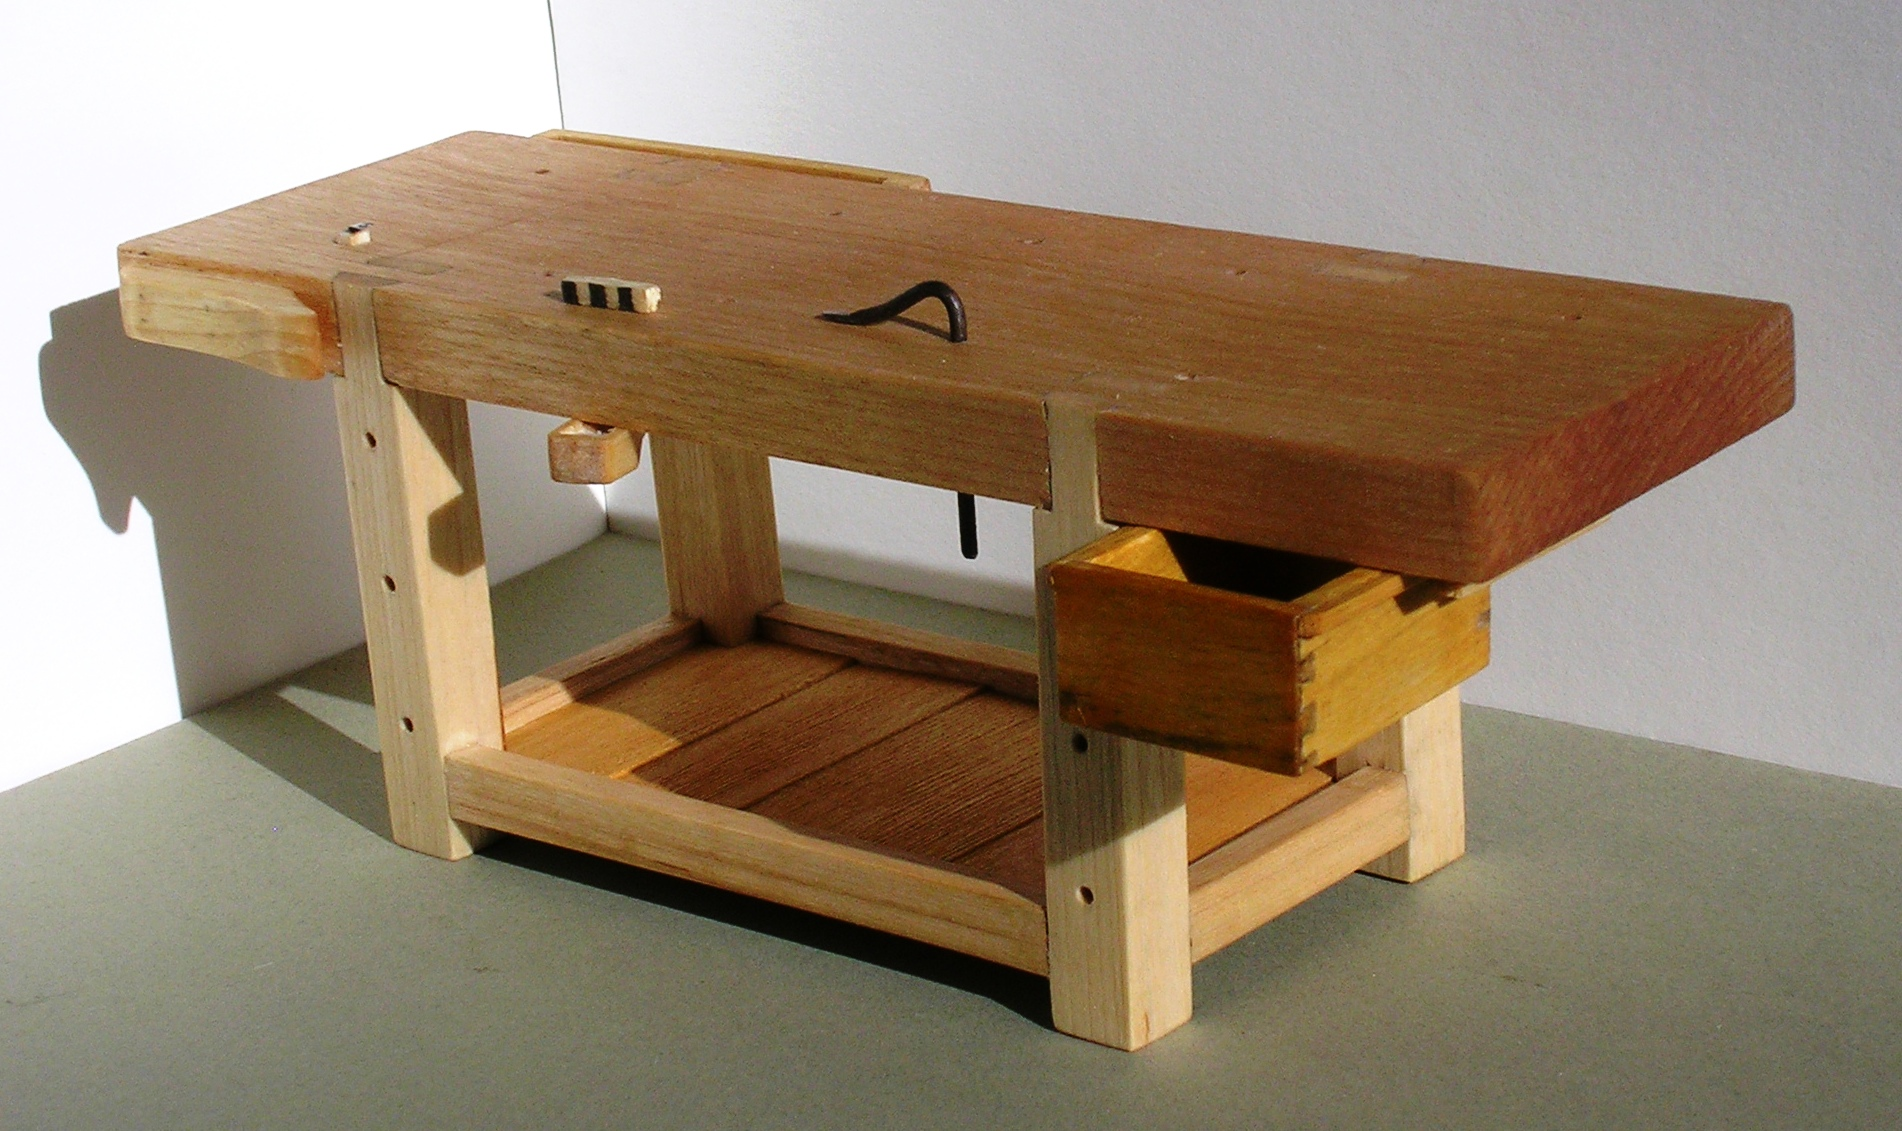 Work Bench Leg | Work Bench Legs | Workbench Drawer Kit